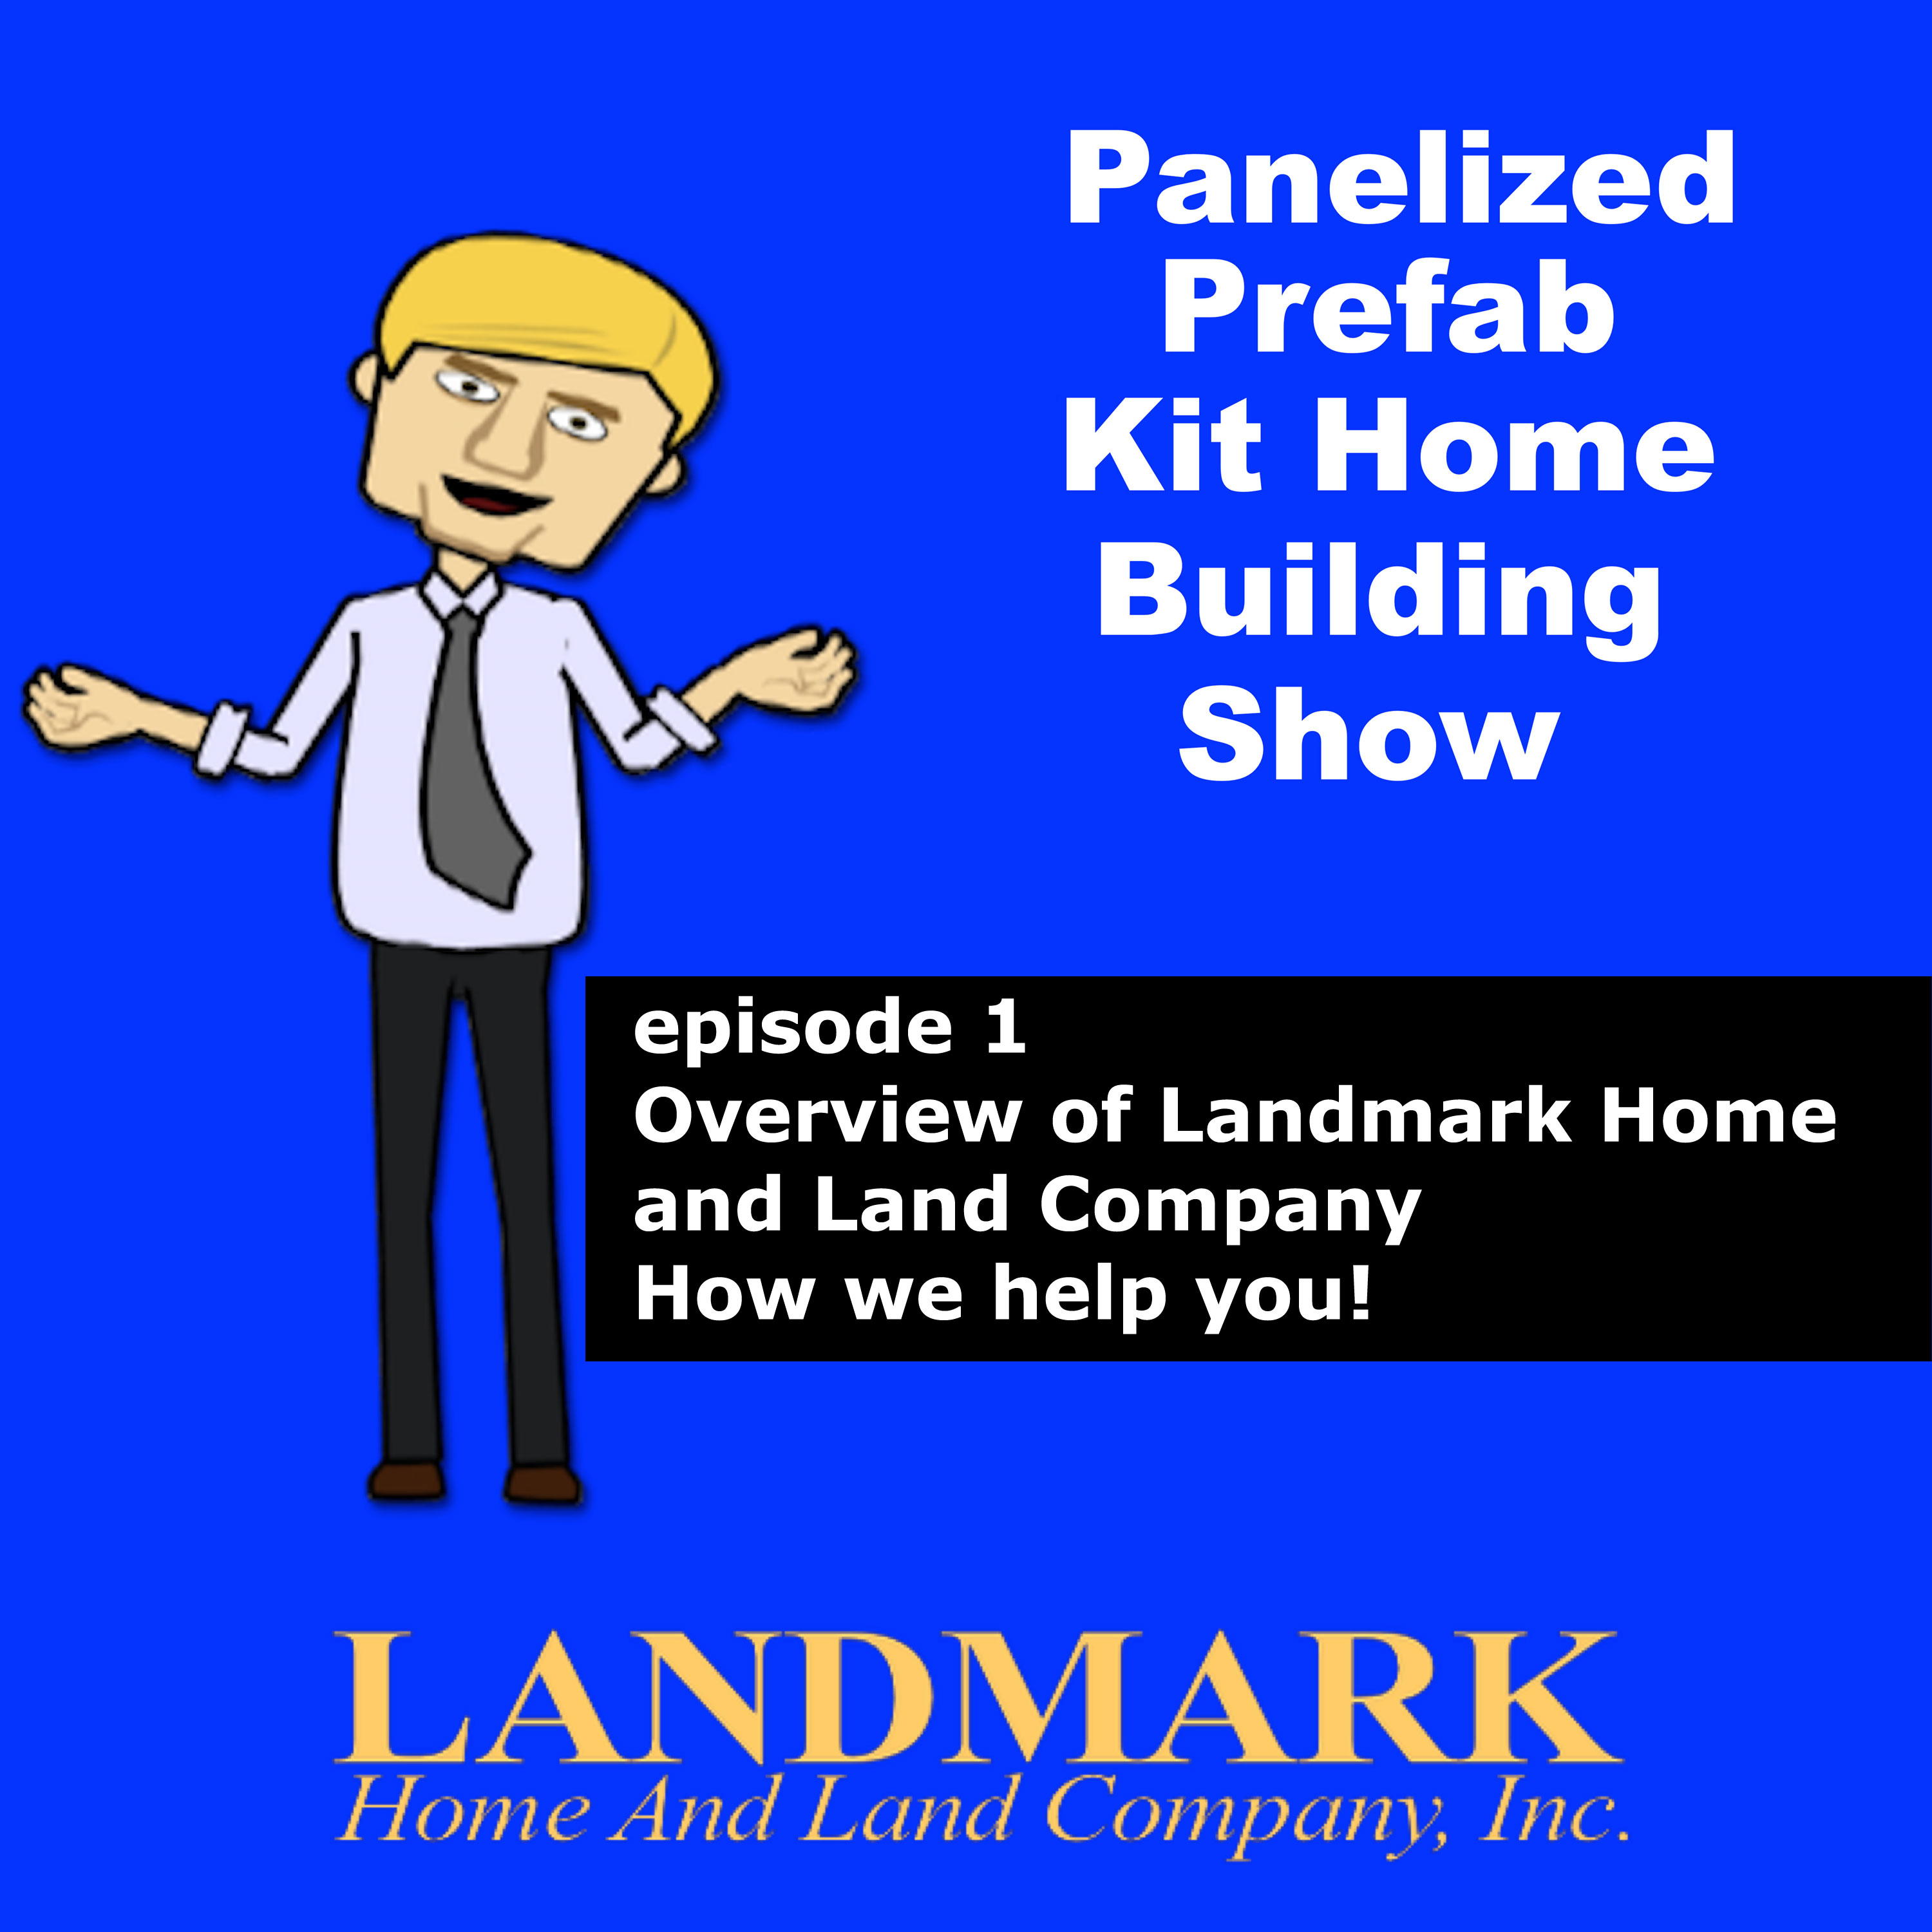 Overview of Landmark Home and Land Company - How we help you!